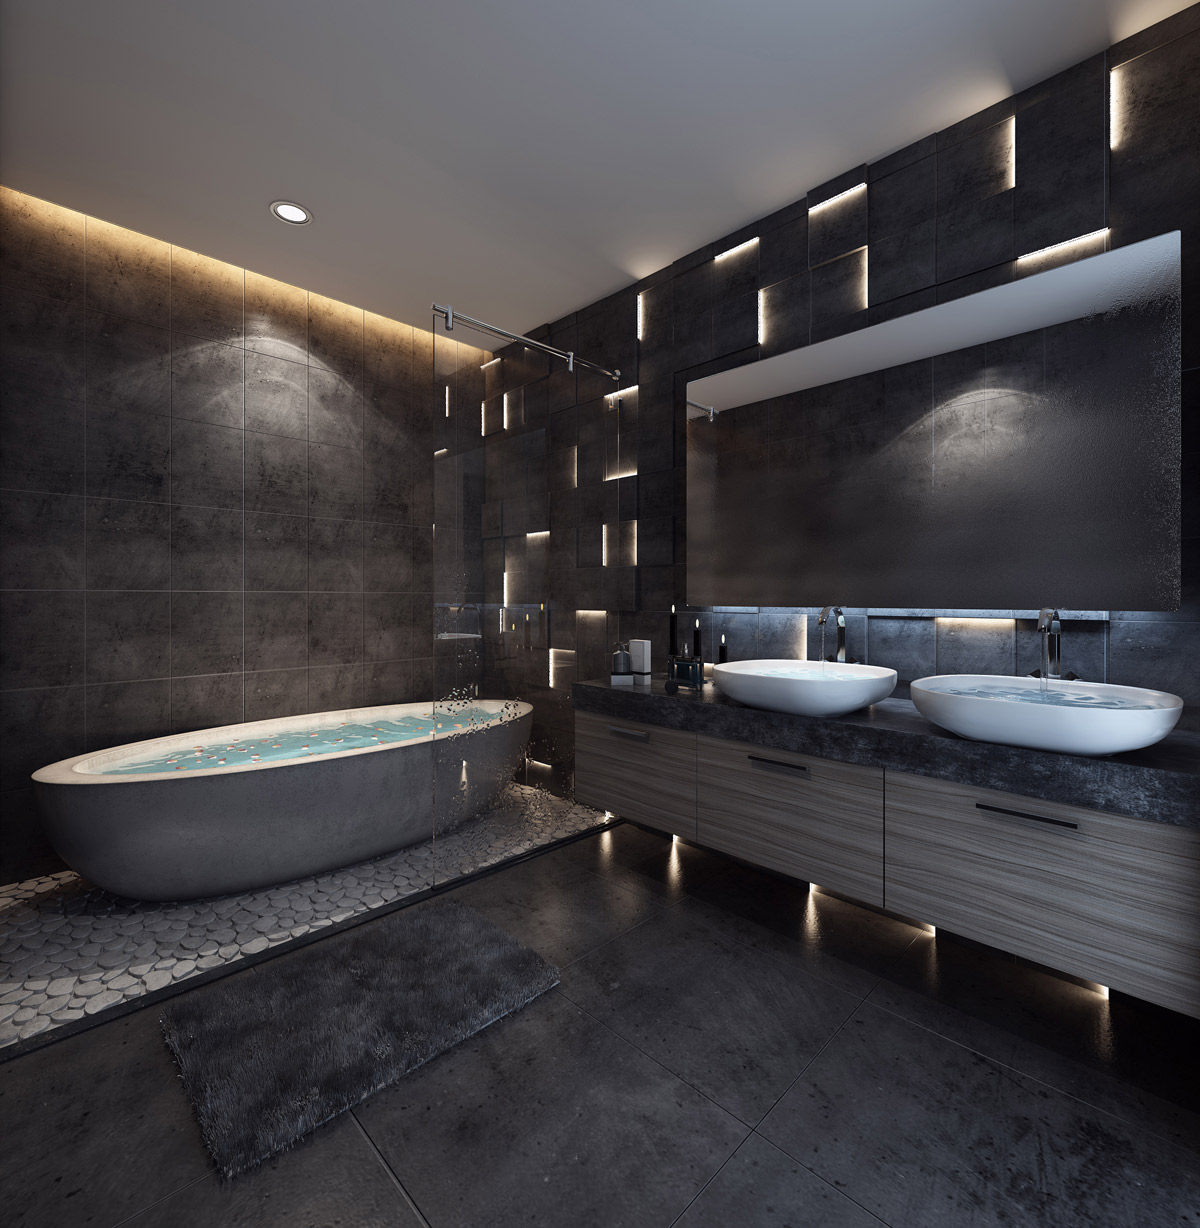 This Bathroom Is Decked Out In All Black Tile And Concrete The Walls